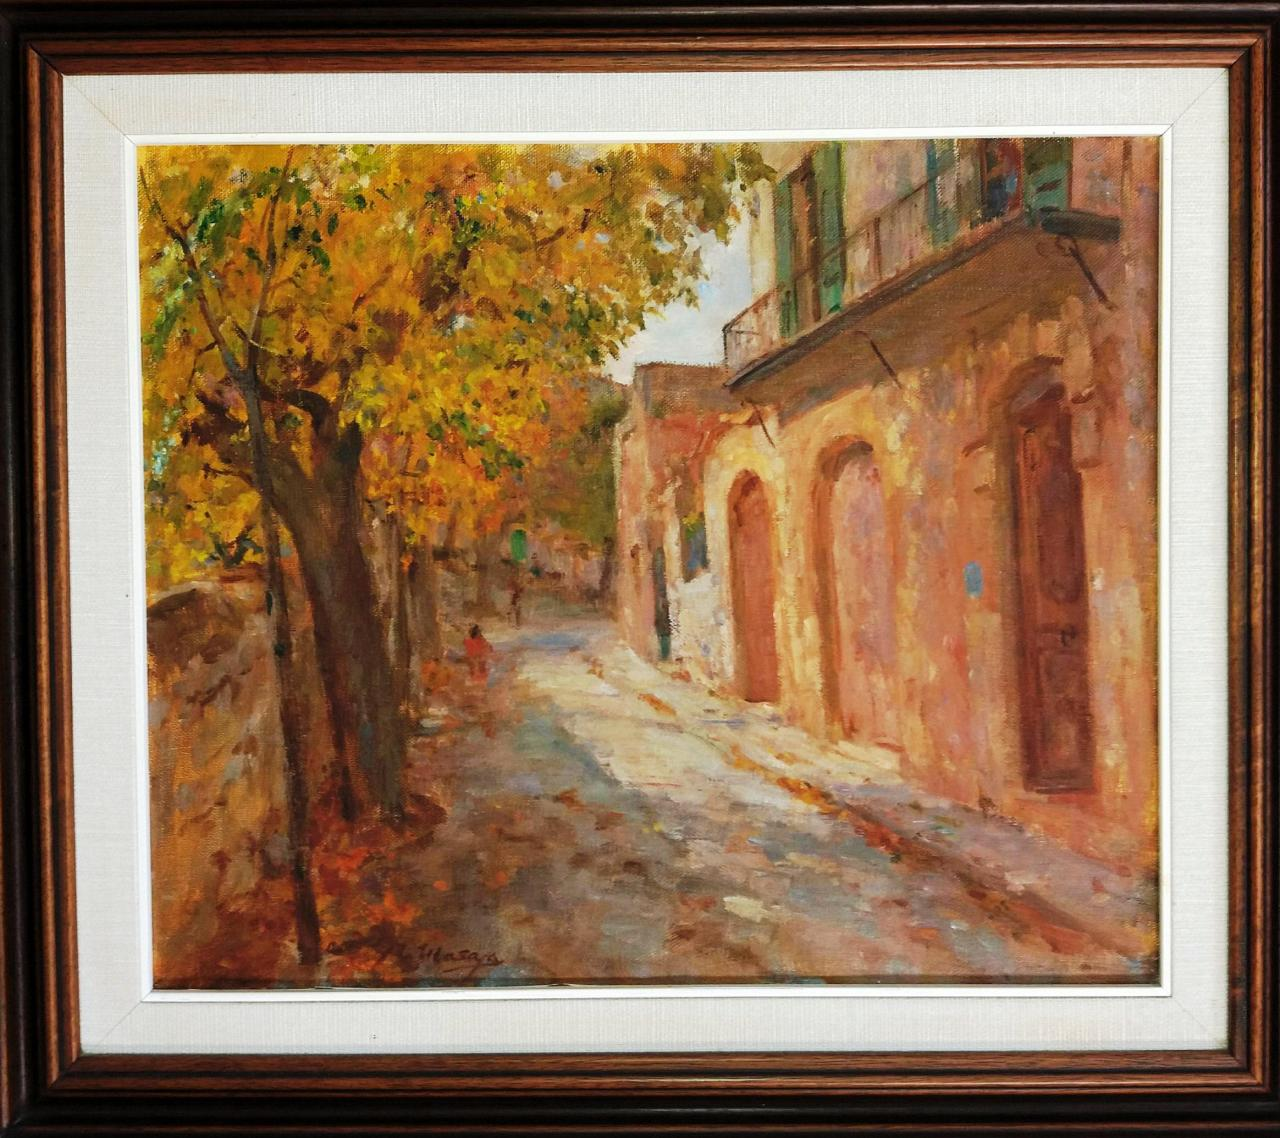 The painter Masaya collected the front of the hostel from Uetam Street in an oil painting around 1984